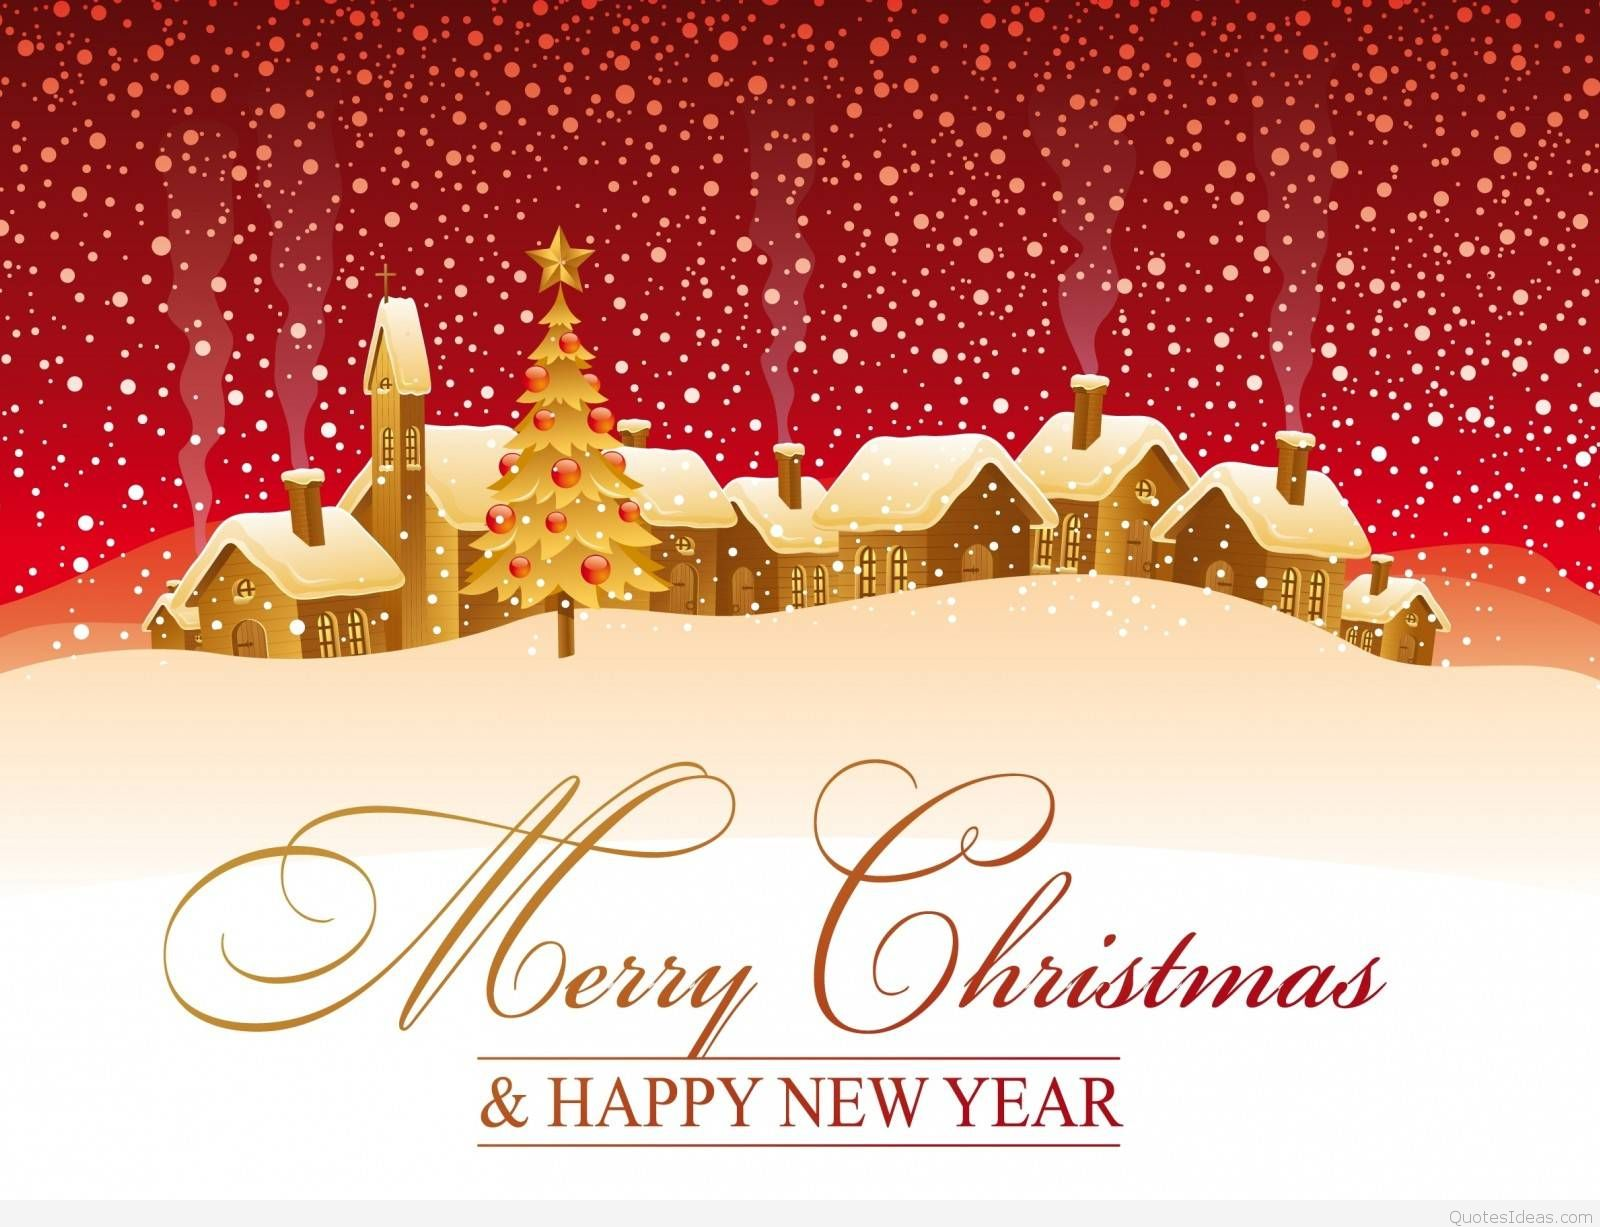 merry christmas happy new year to you and your family from all of us here at family medical center